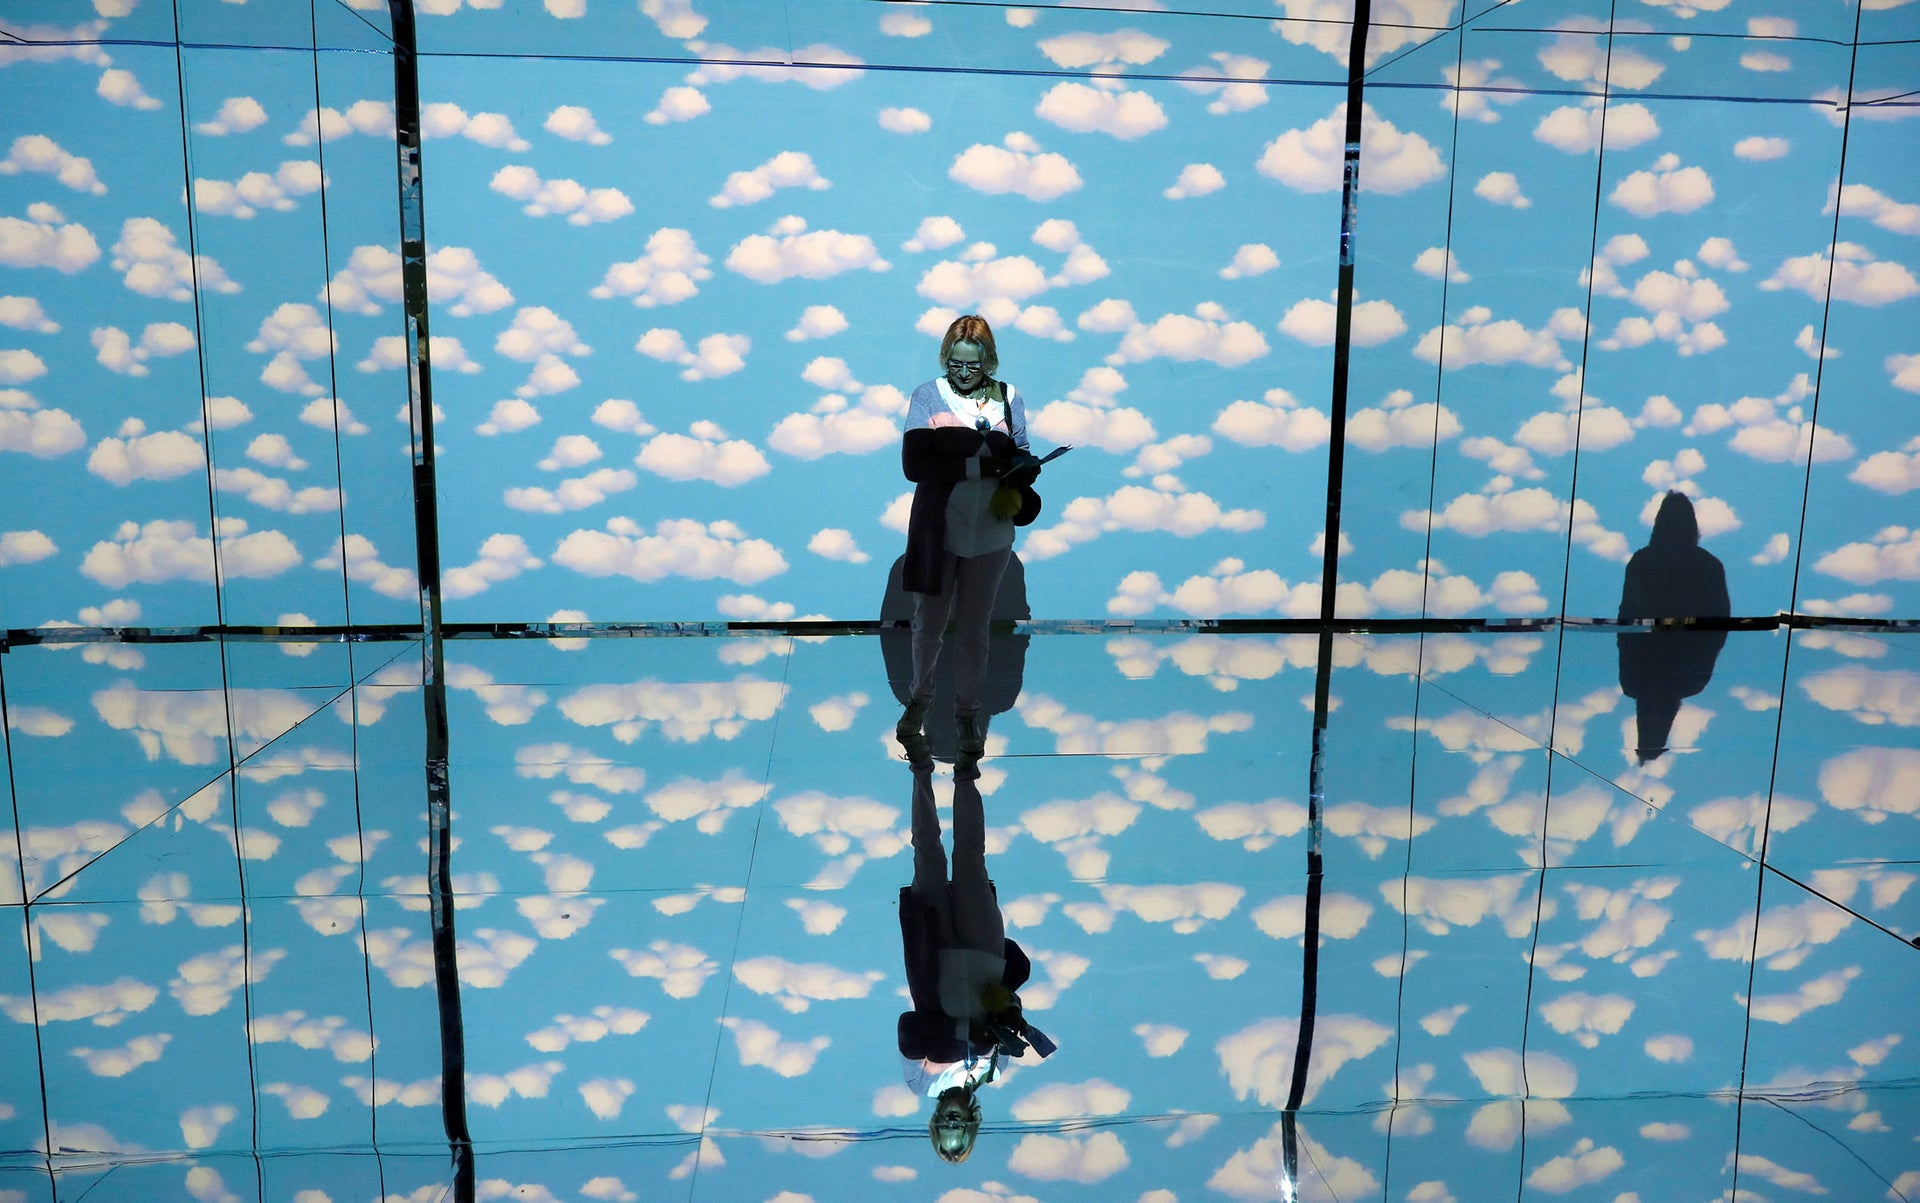 """A multimedia exhibition dedicated to Belgian artist Rene Magritte, in Milan. According to Noah Harari, since the language revolution, there is no such thing as a """"natural way of life."""" There are only different cultural choices from a vast range of possibilities."""